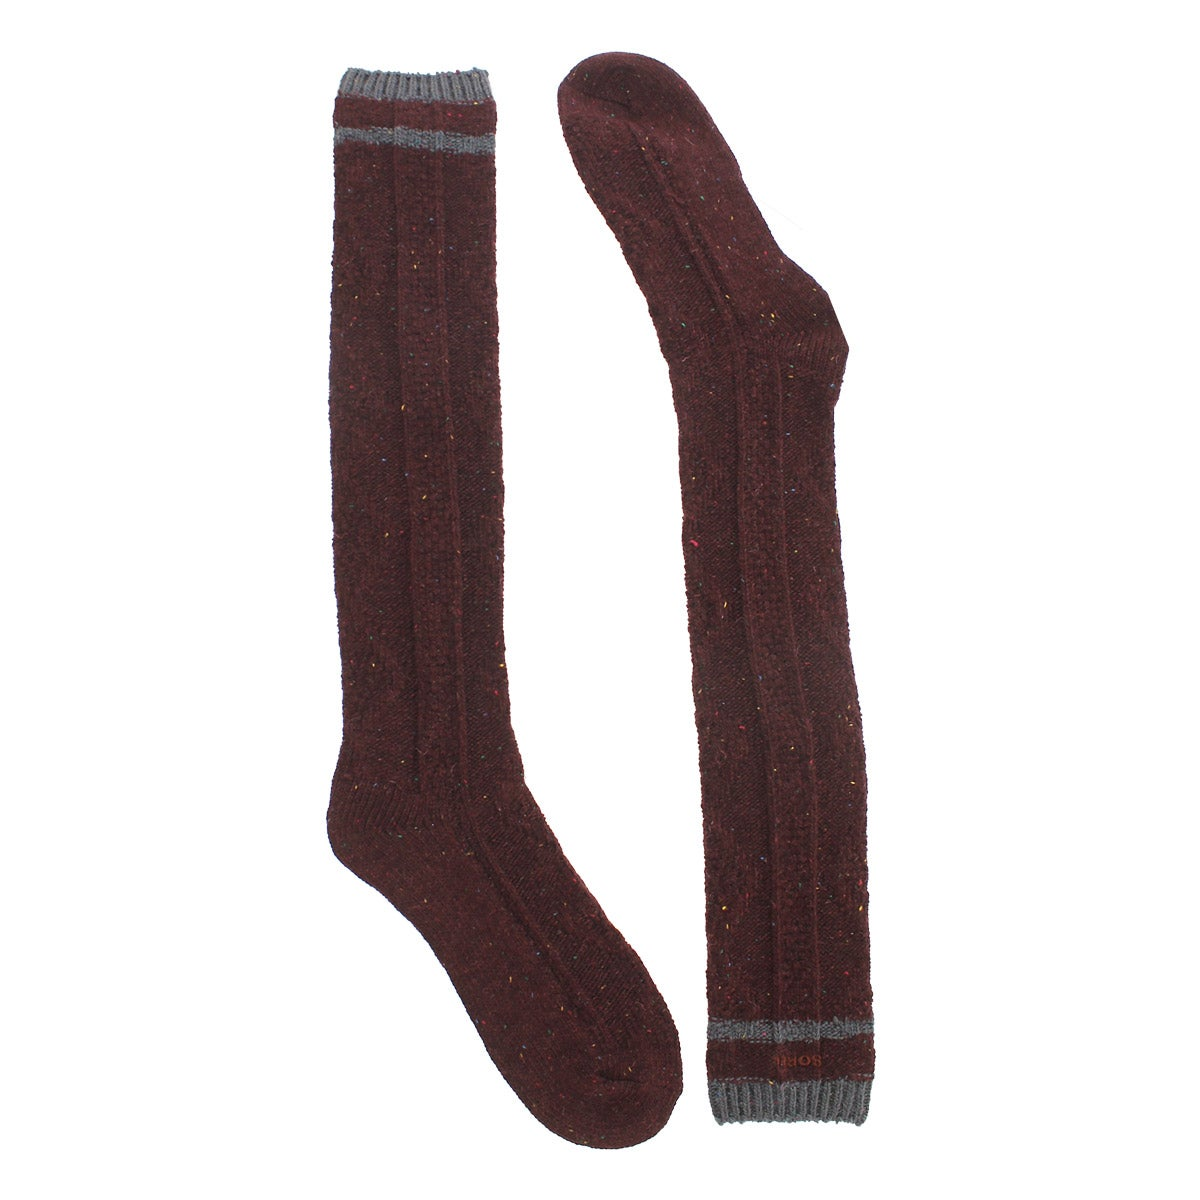 Lds 56NOversizedCable redwood tweed sock